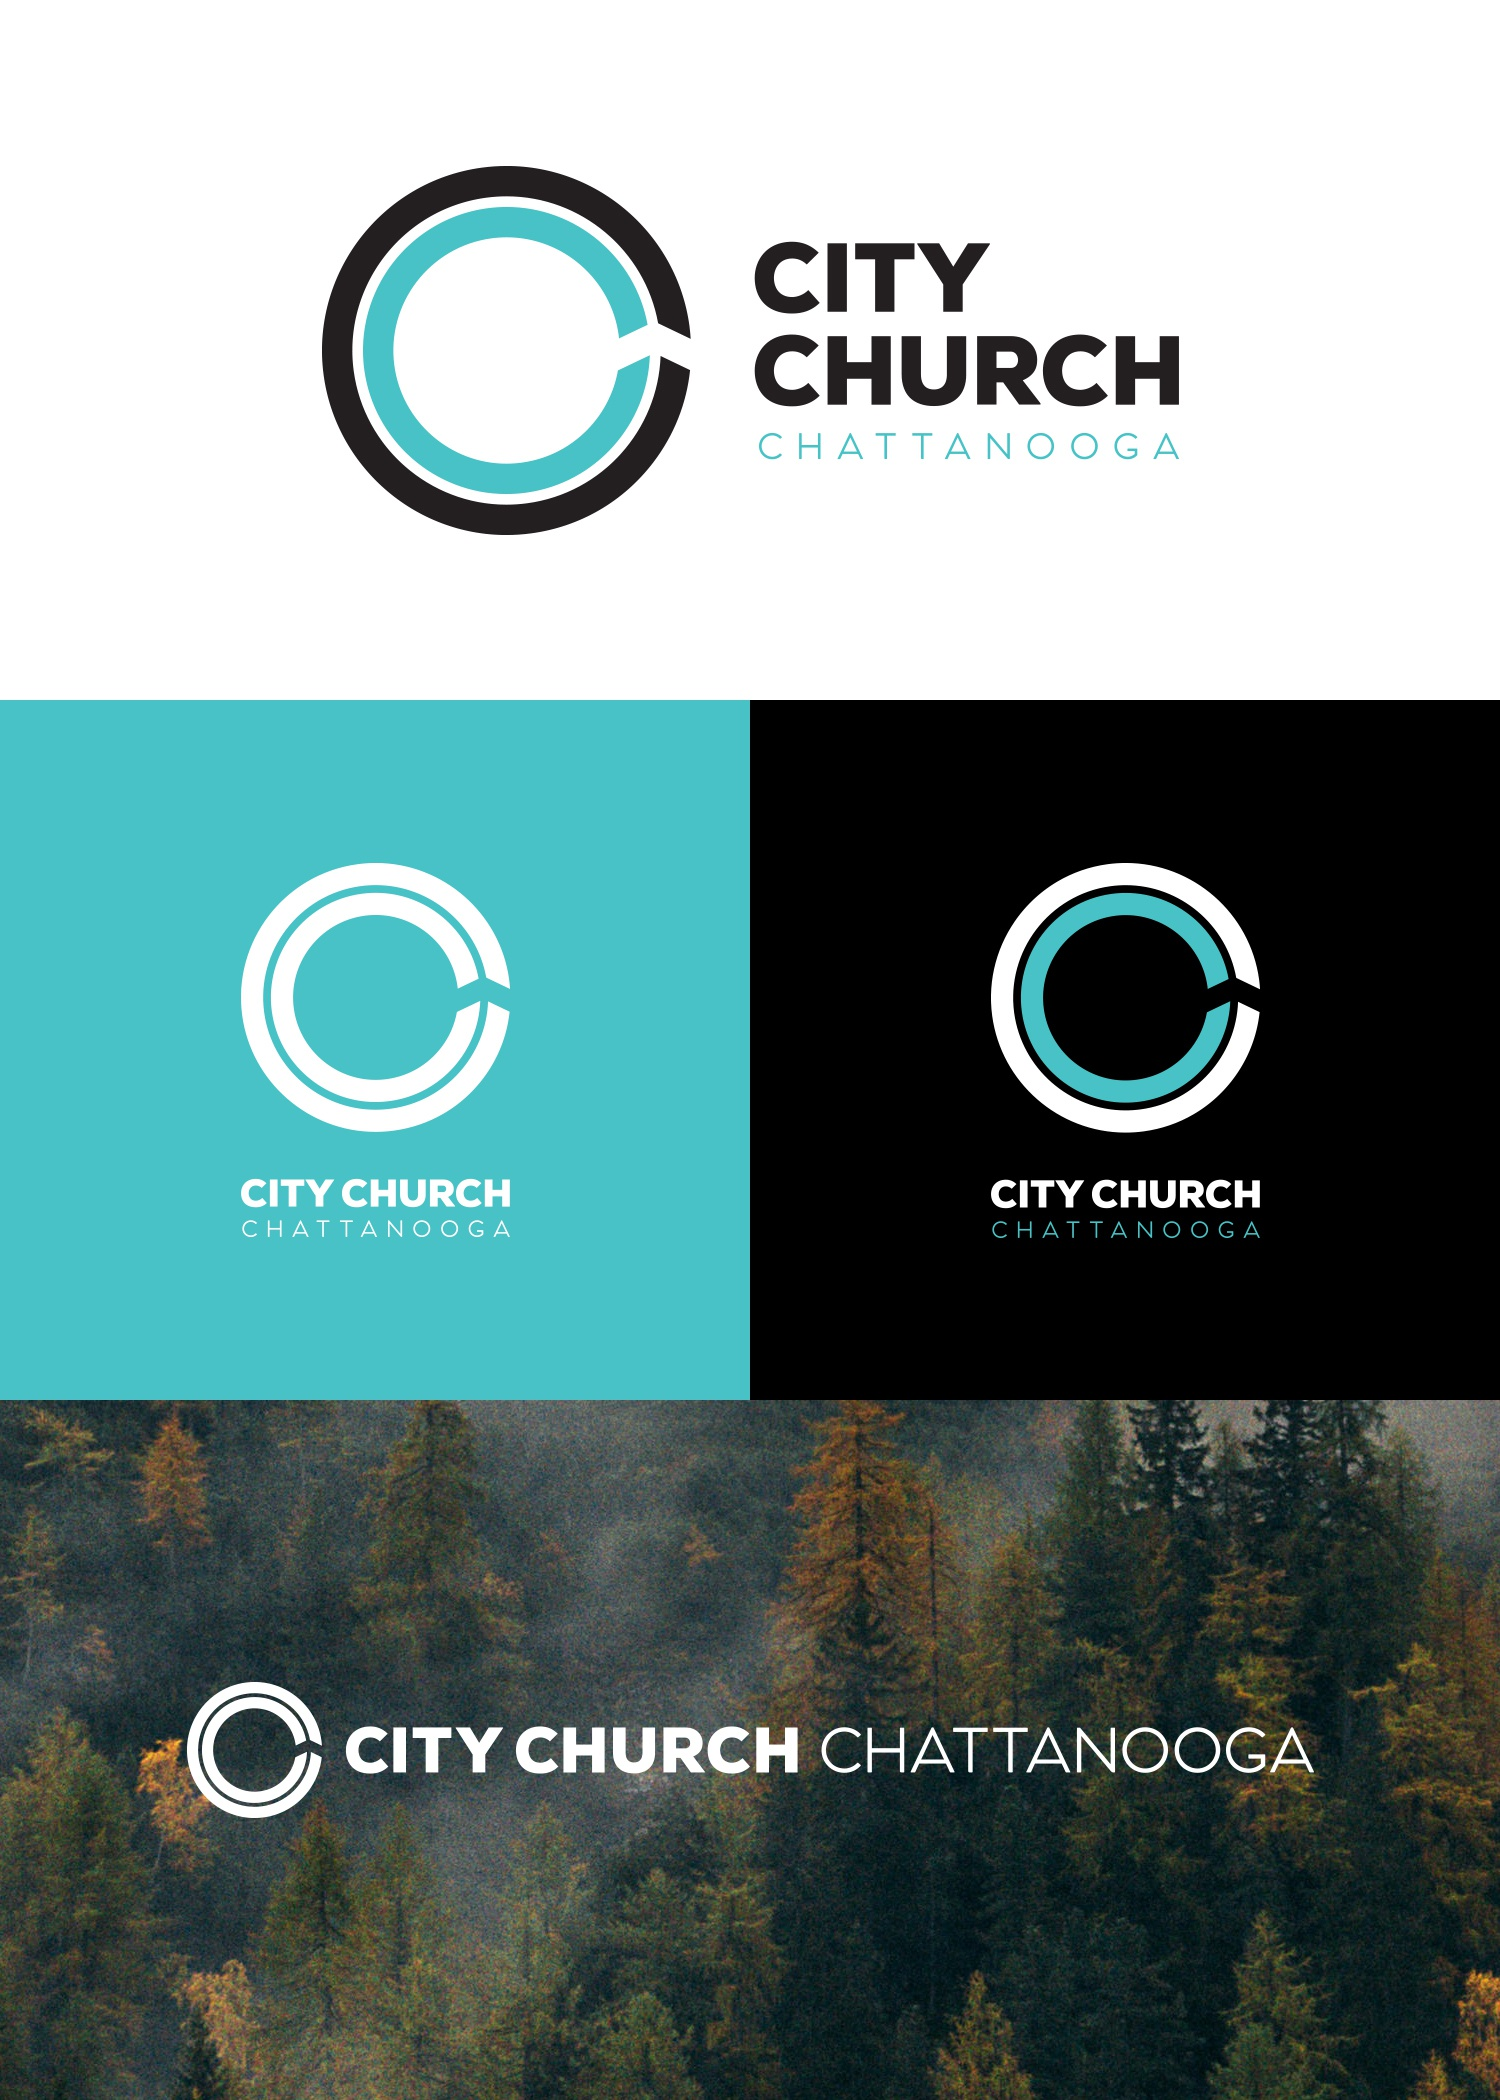 Chattanooga, City Church